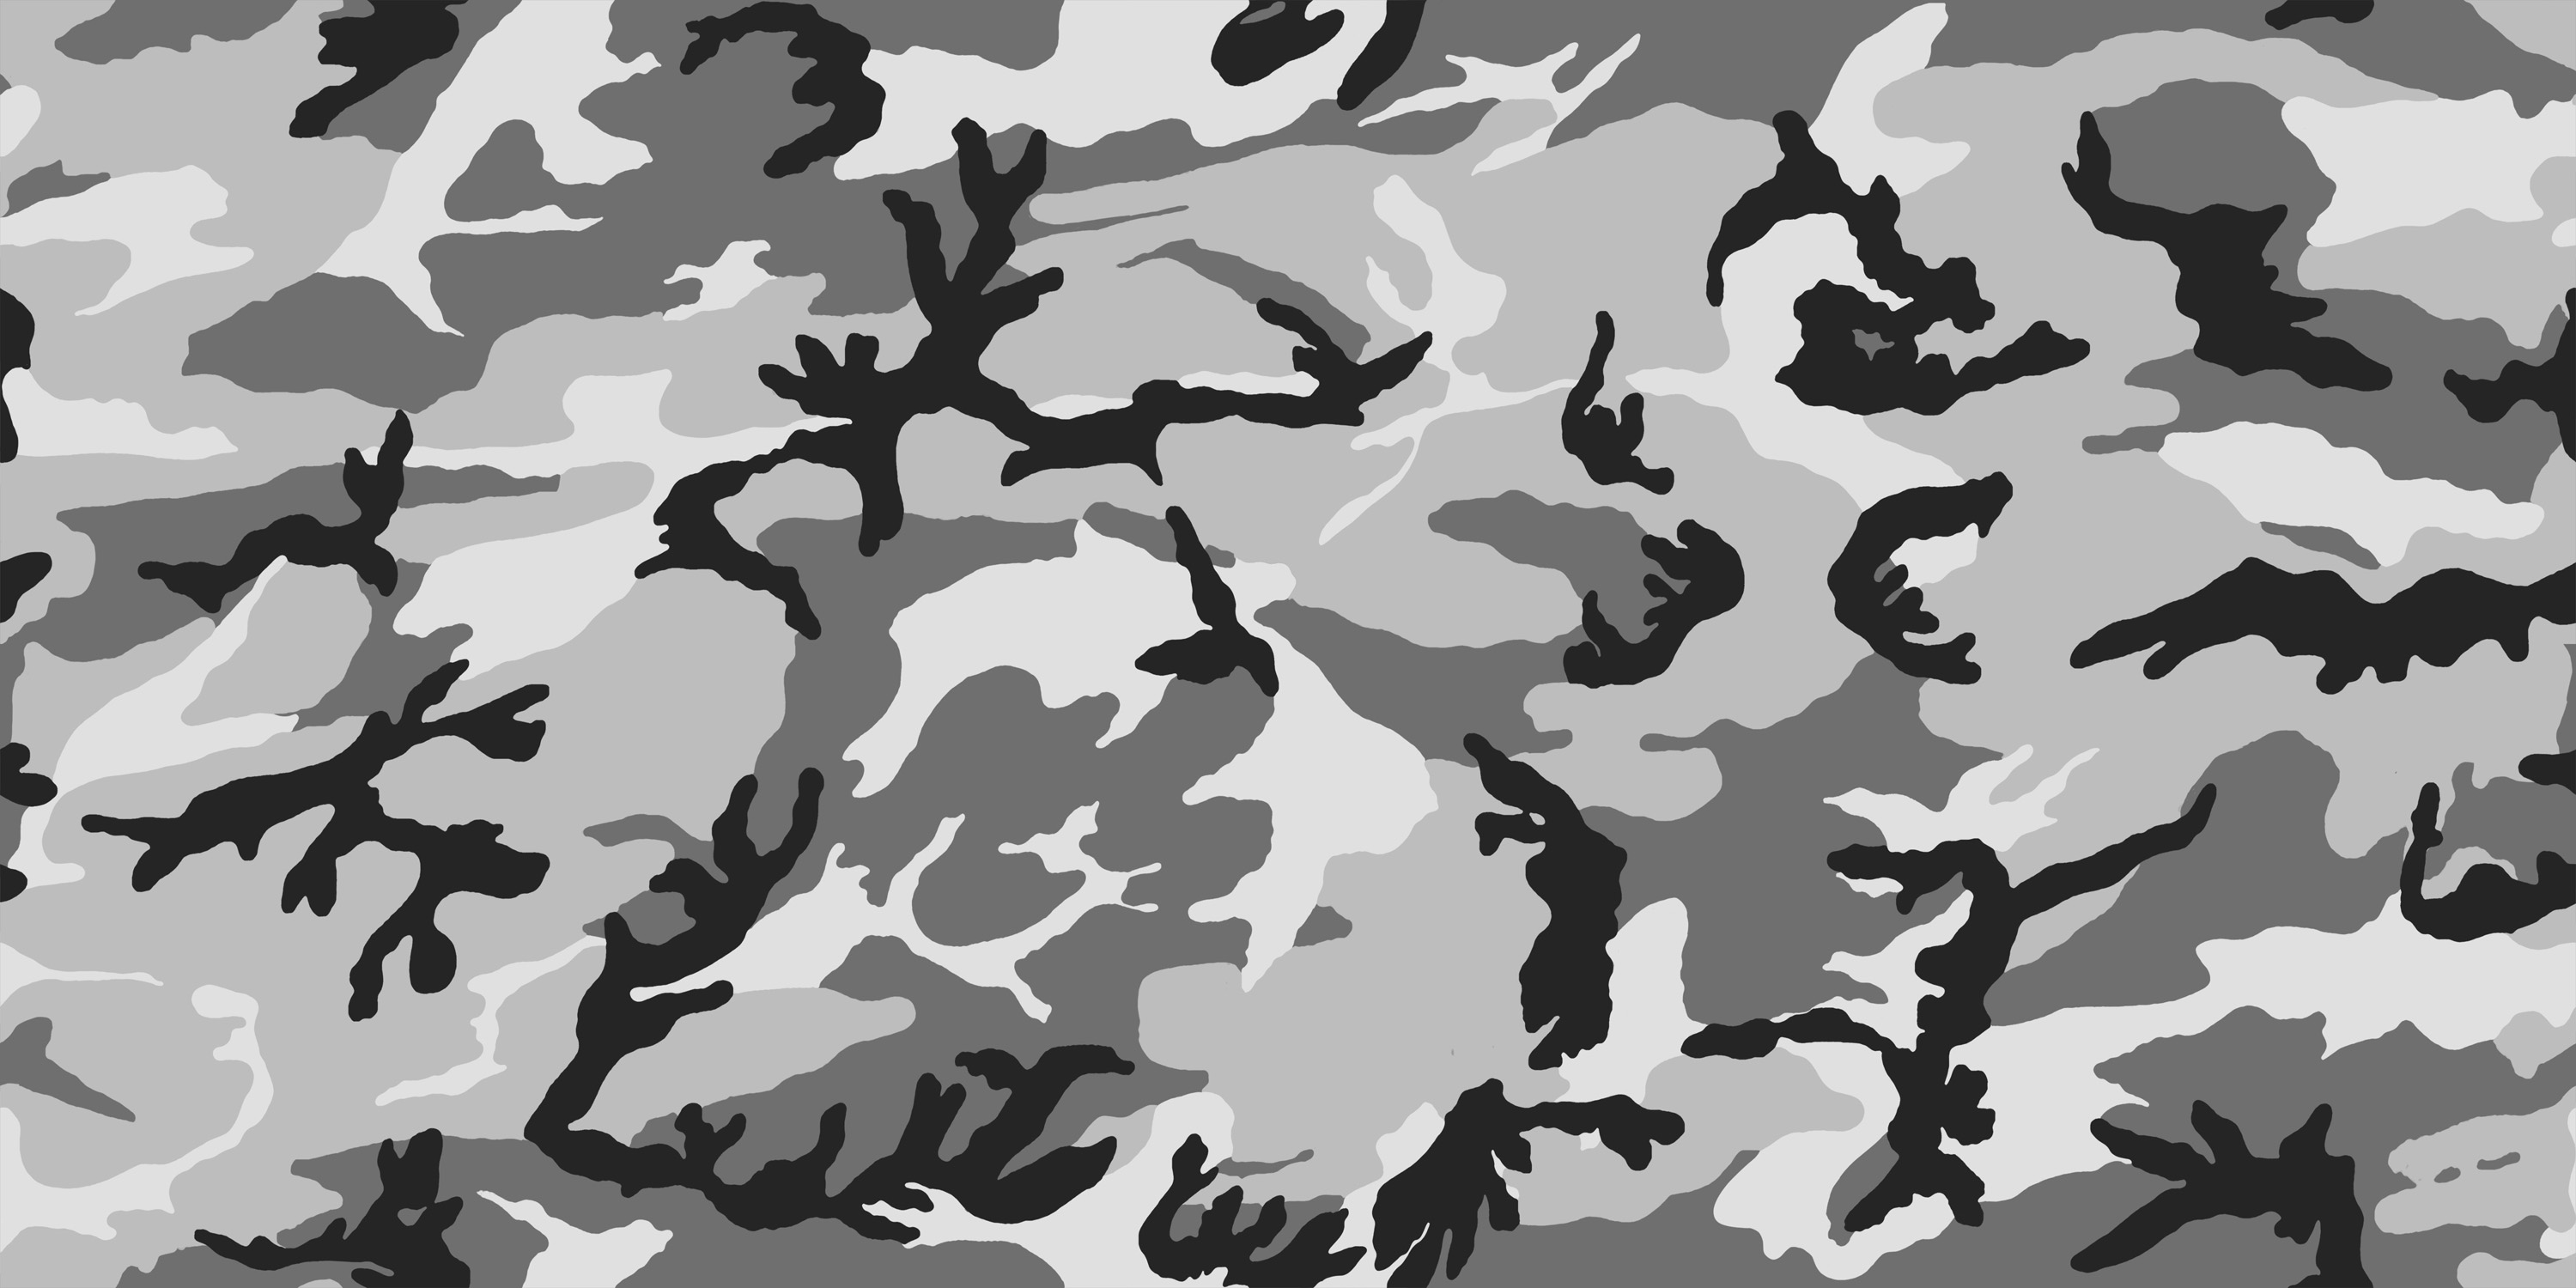 camouflage texture, download photo, background